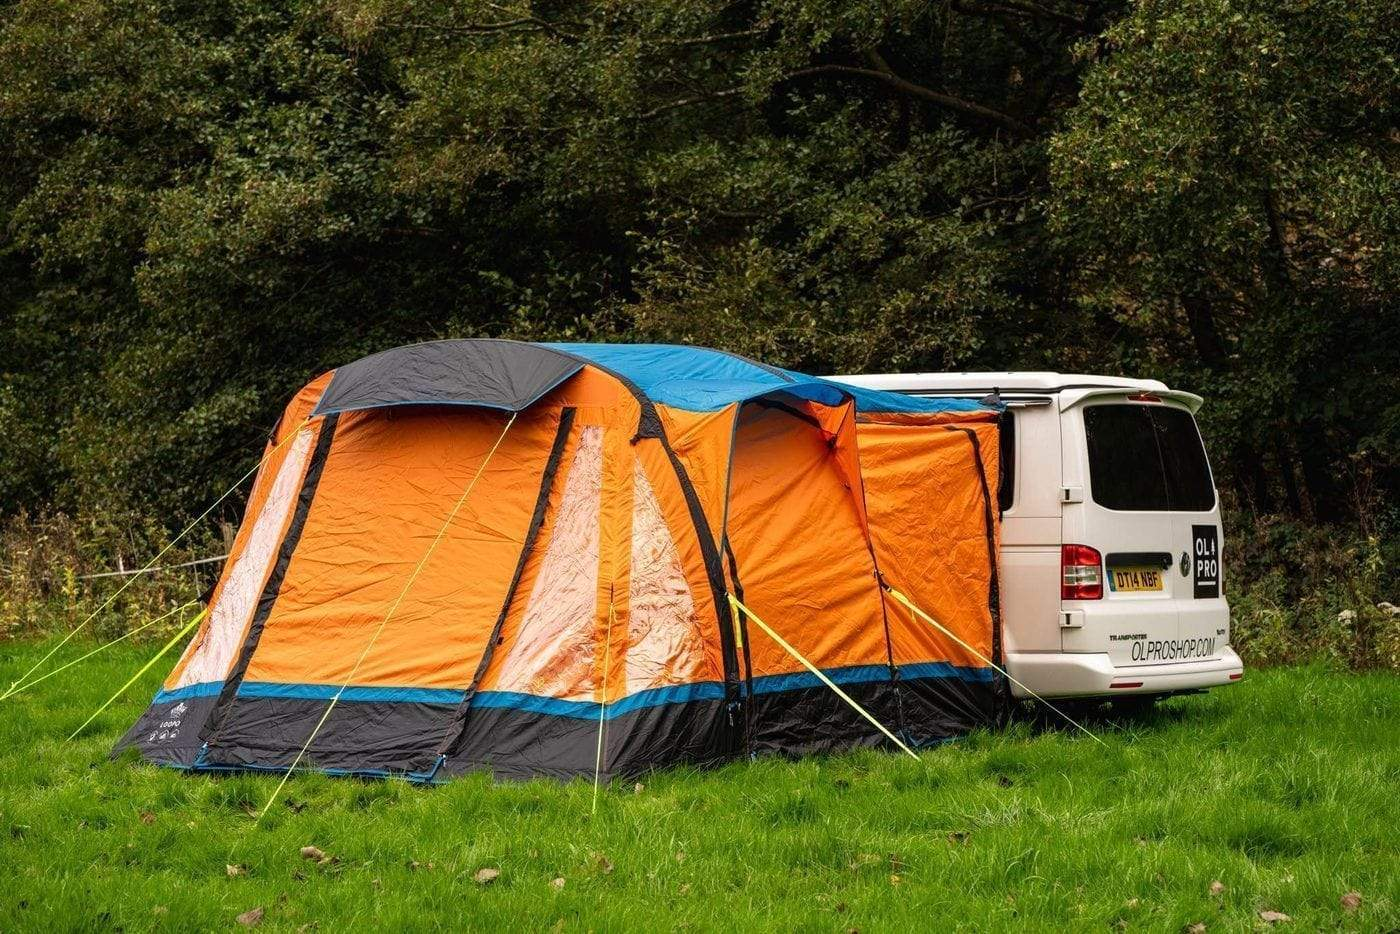 Loan & Go Awning Rental -Loopo Breeze Inflatable Campervan ...